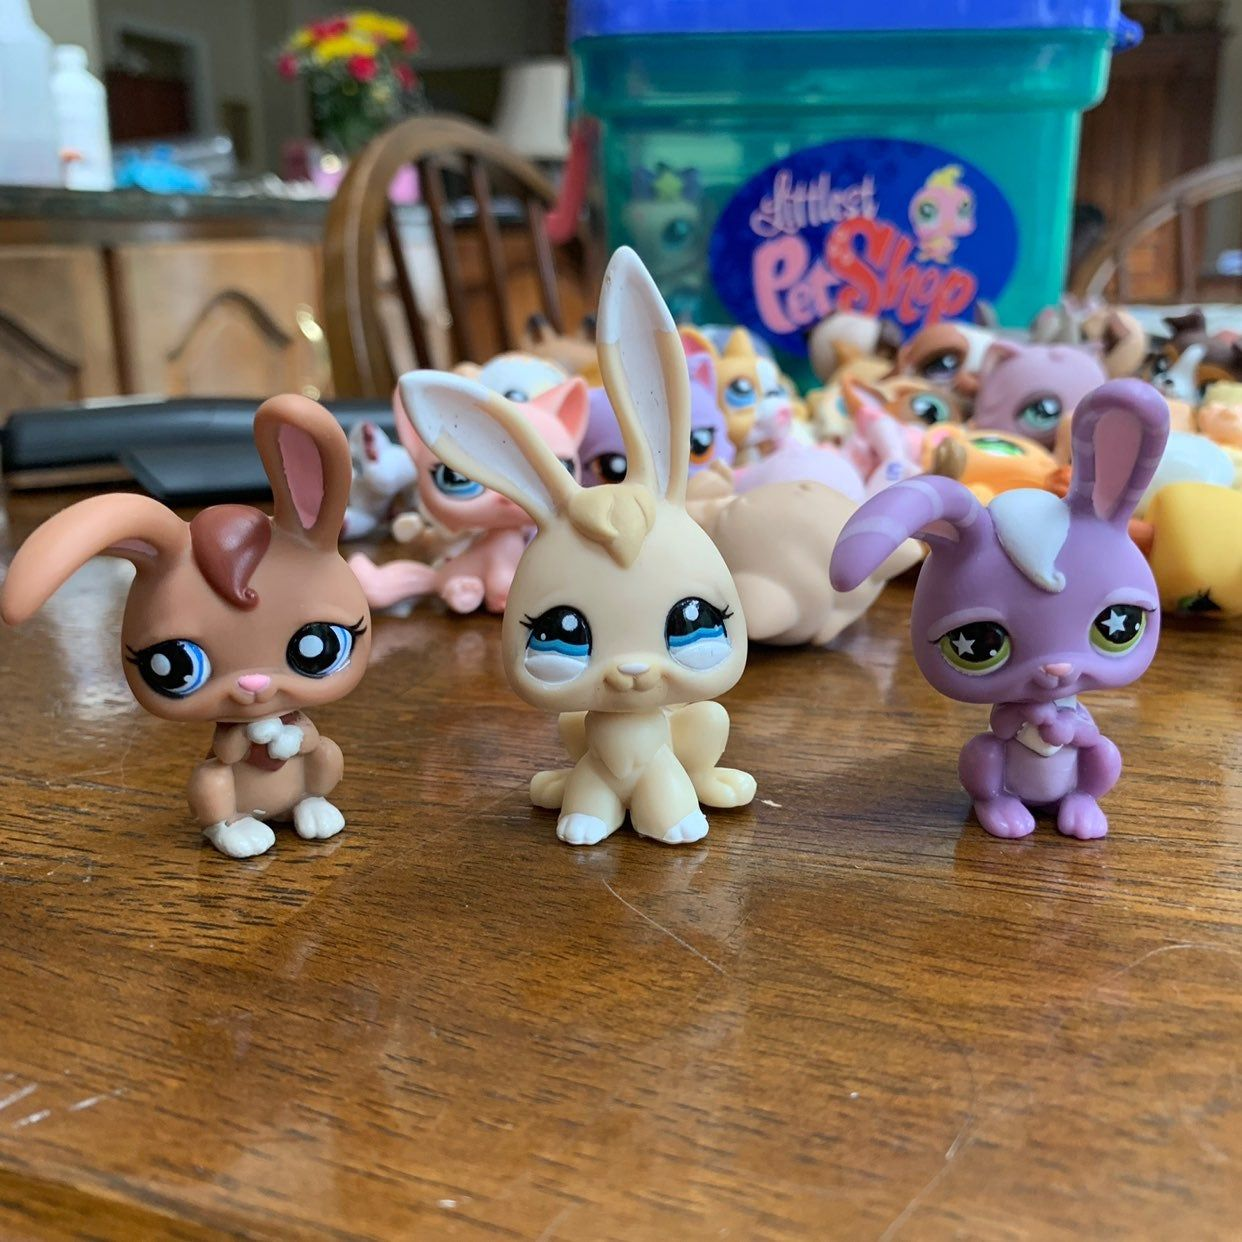 Lot Of 3 Lps Bunnies Great Condition Message Me With Any Questions Open To Offers Lps Littlest Pet Shop Littlest Pet Shop Little Pet Shop